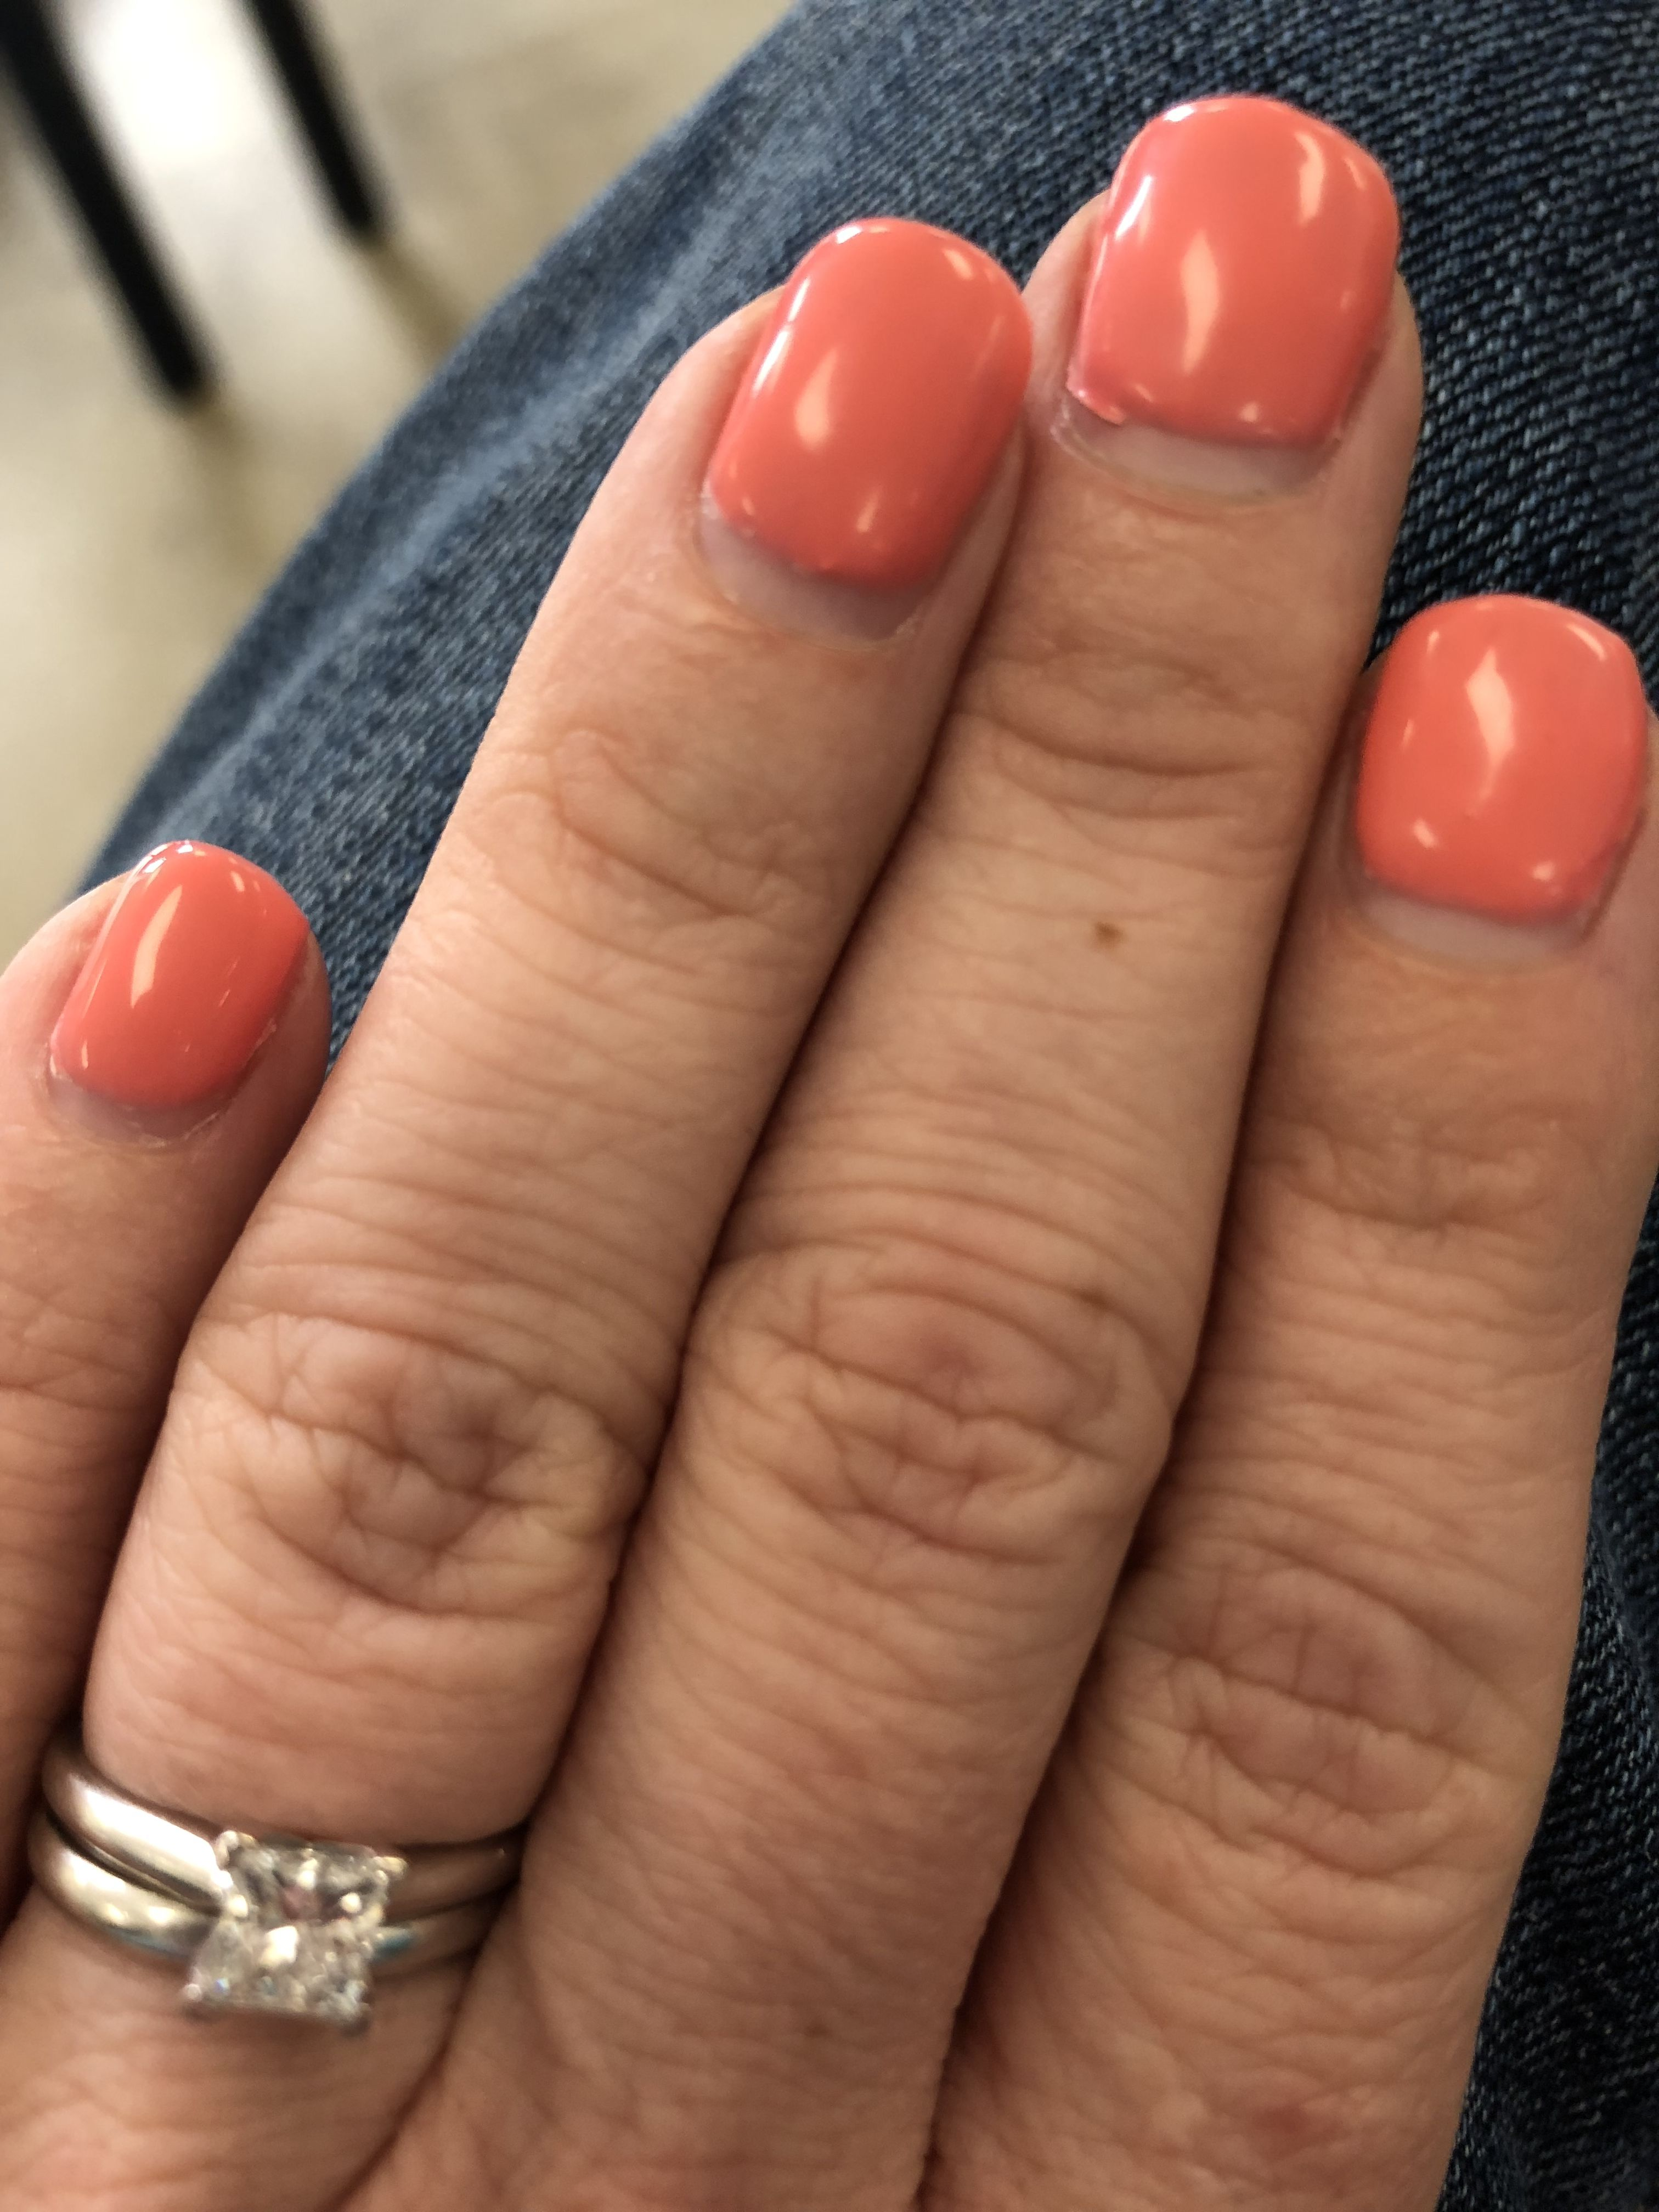 One Week Ago Today I Got A Lovely Manicure I Already Need A New